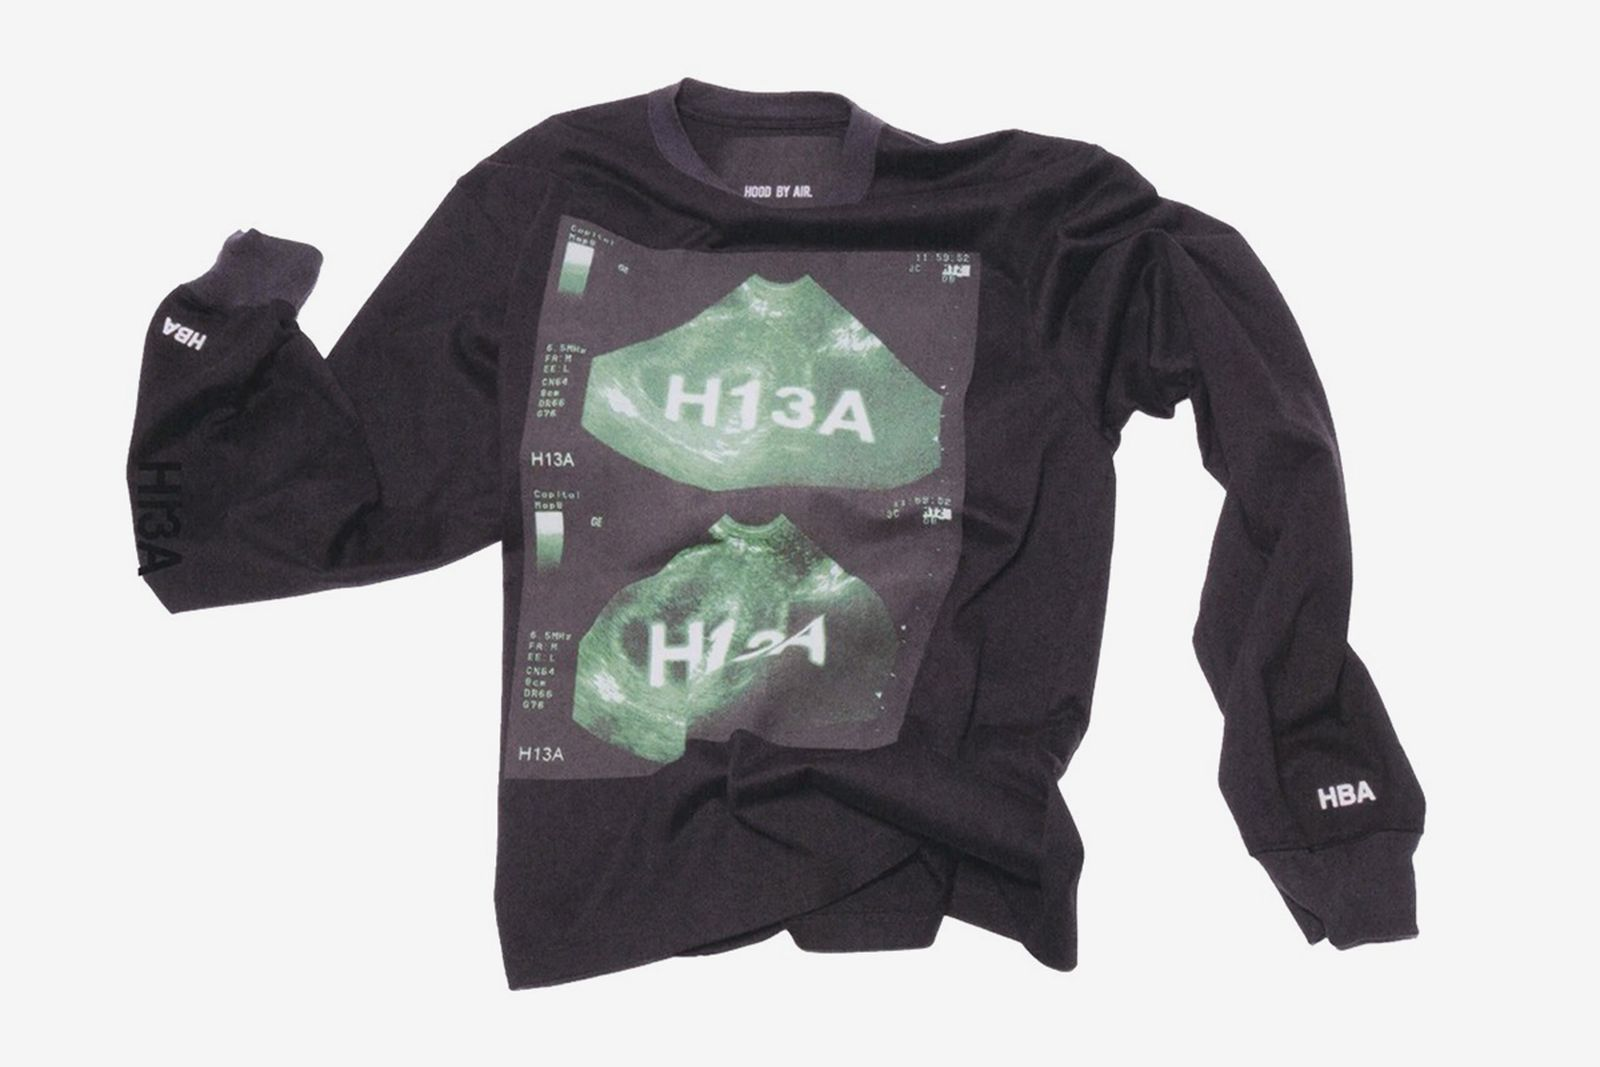 hood-by-air-h13a-collection-0